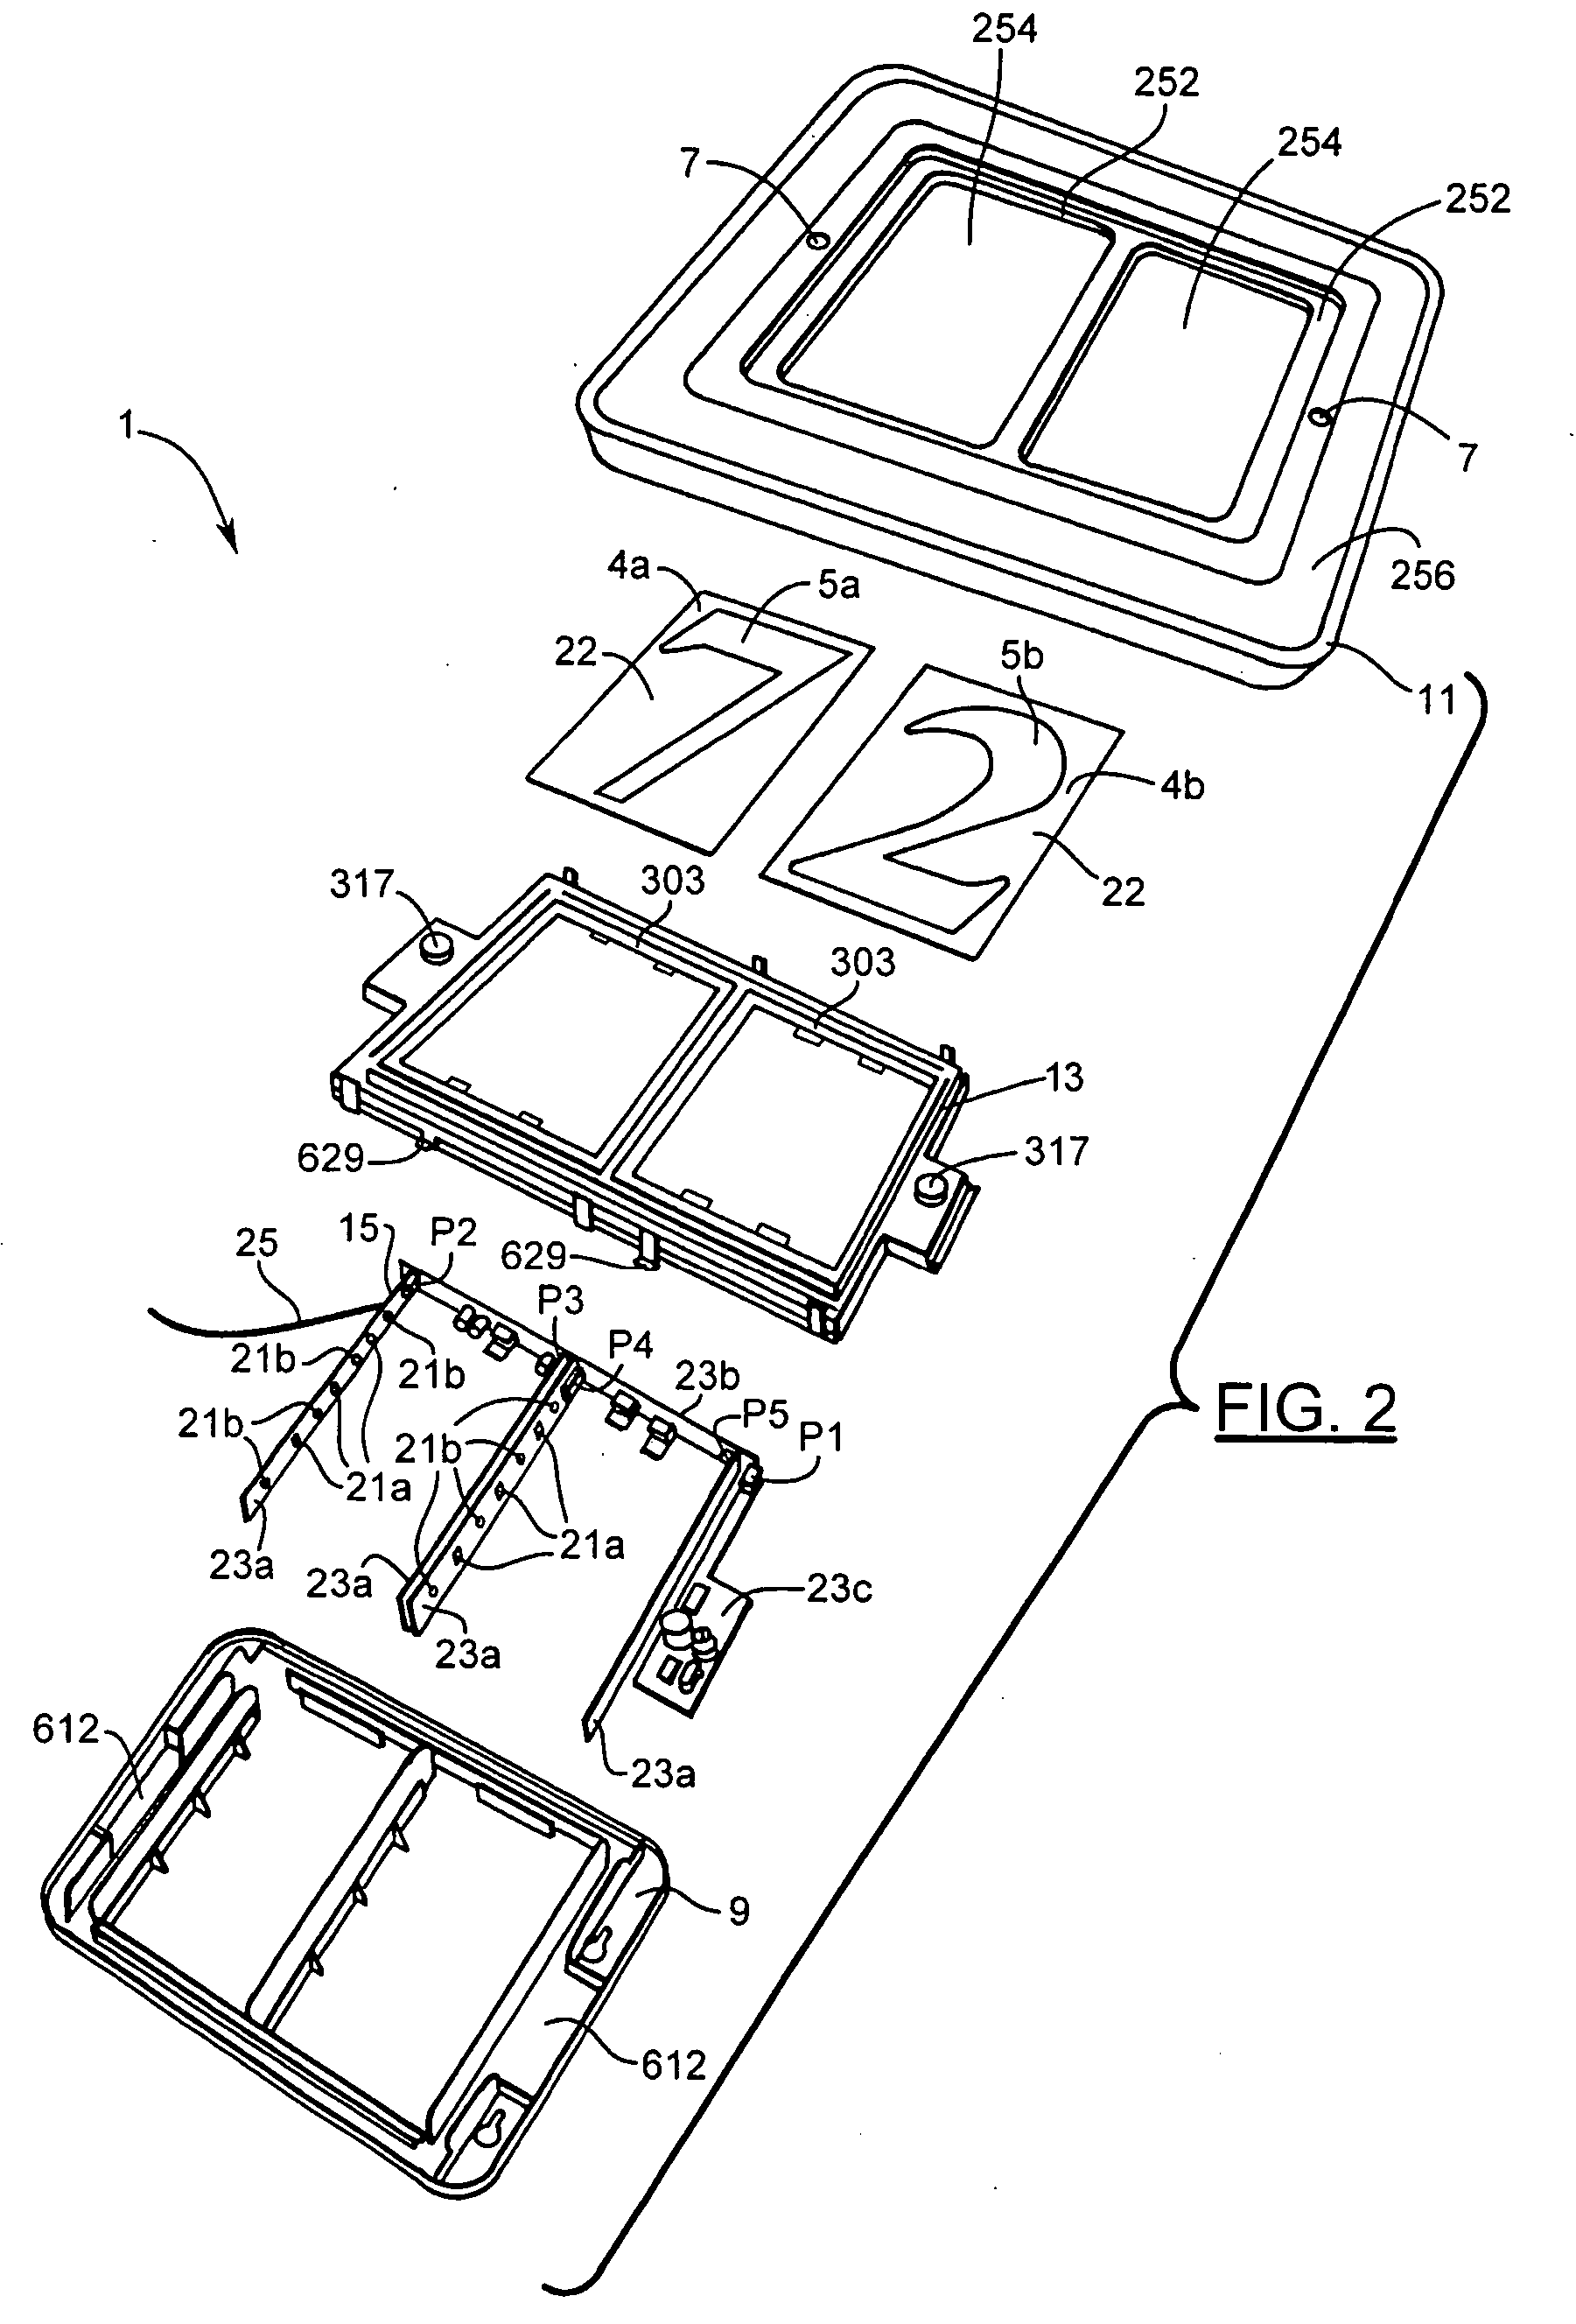 Patent US 20060097889A1 on